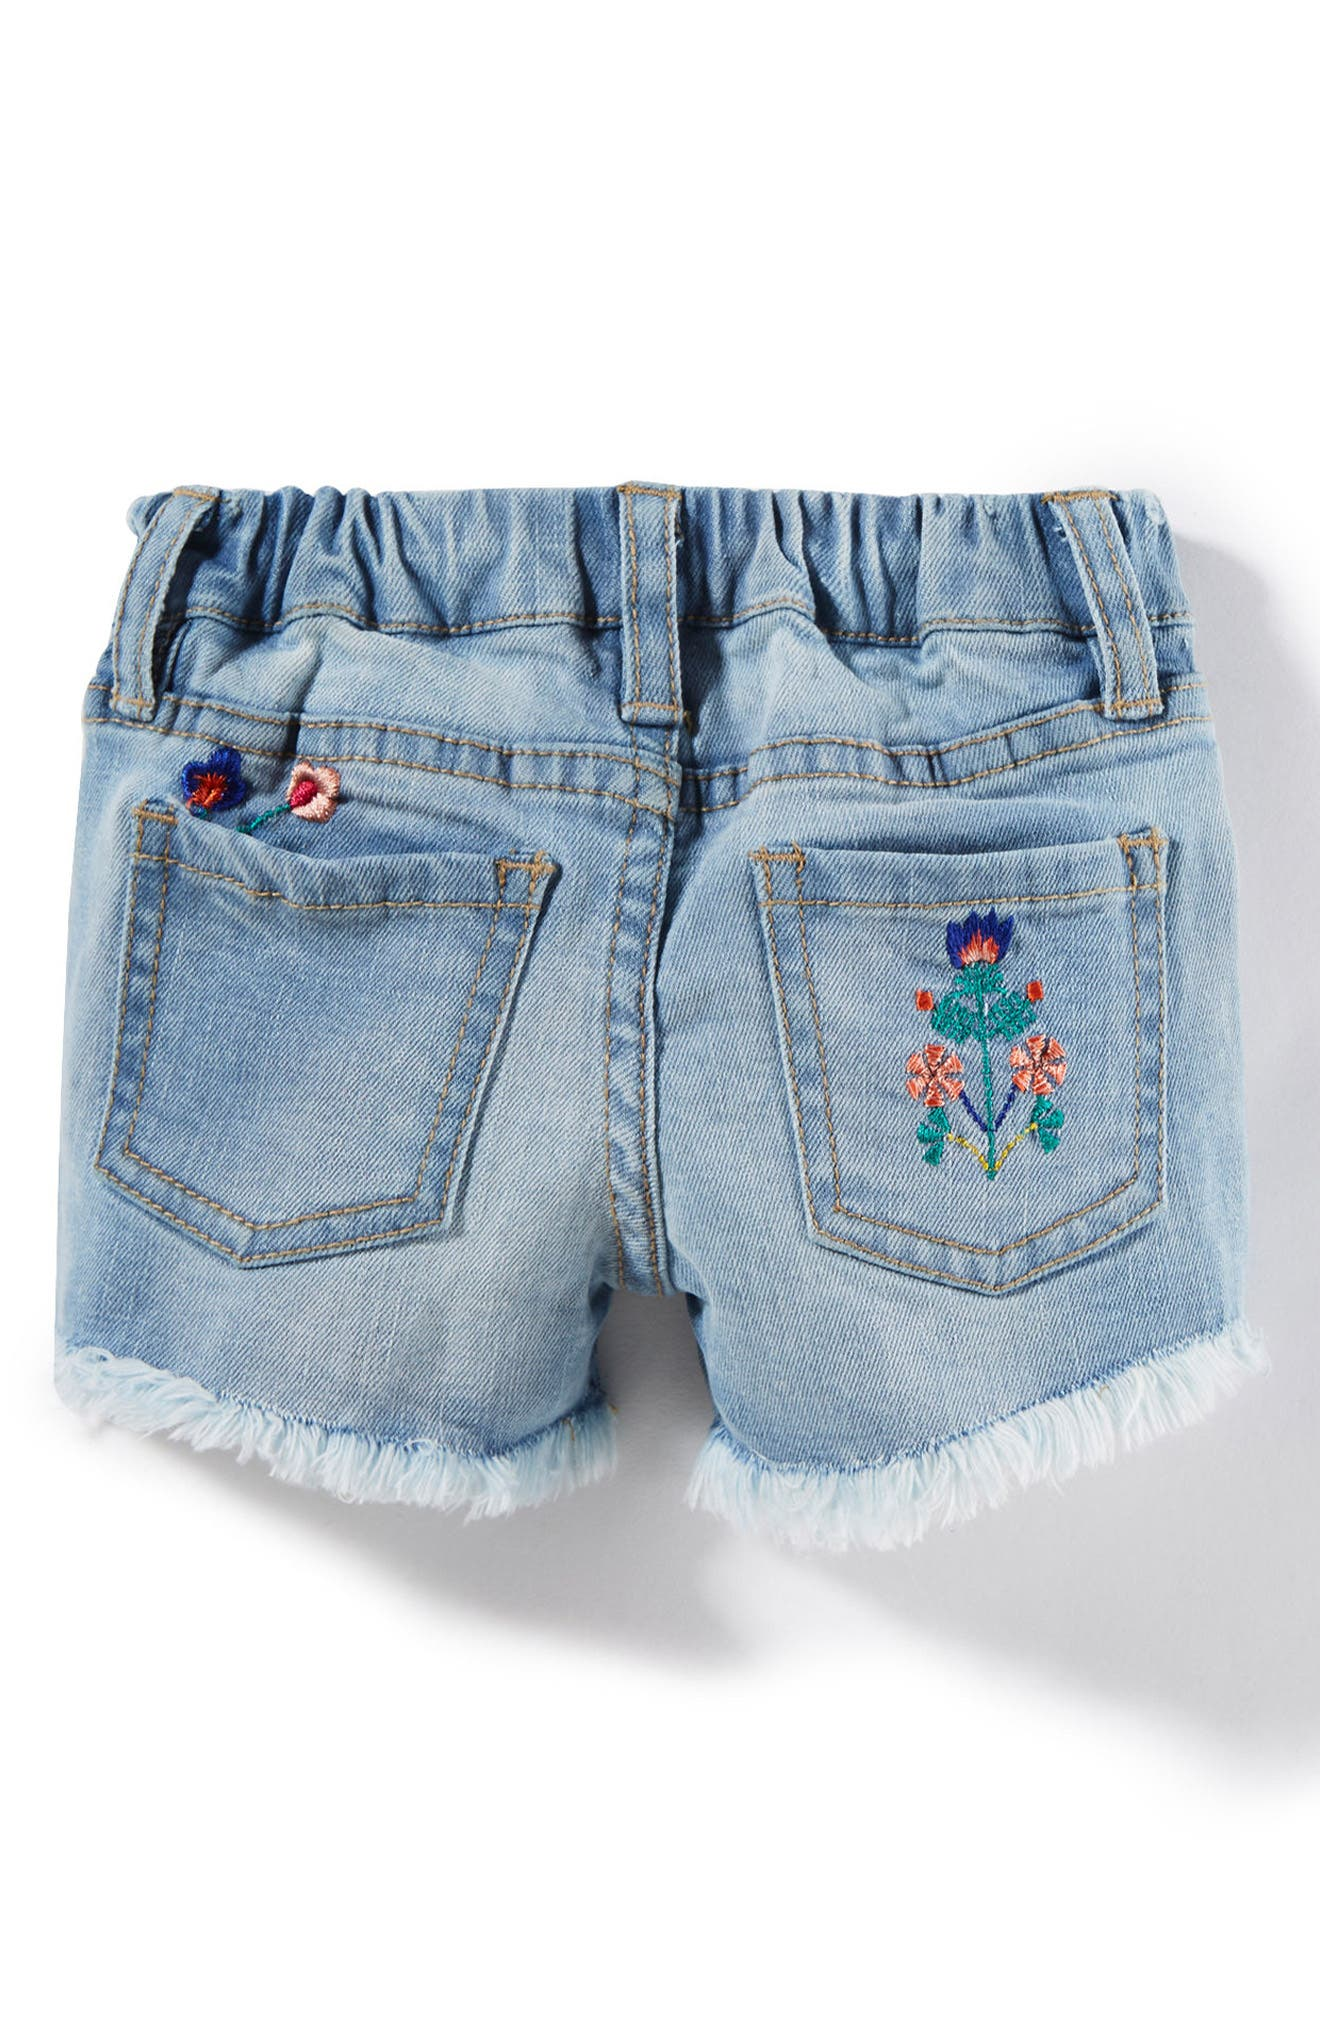 Griffin Embroidered Cuff Denim Shorts,                             Alternate thumbnail 2, color,                             Bleach